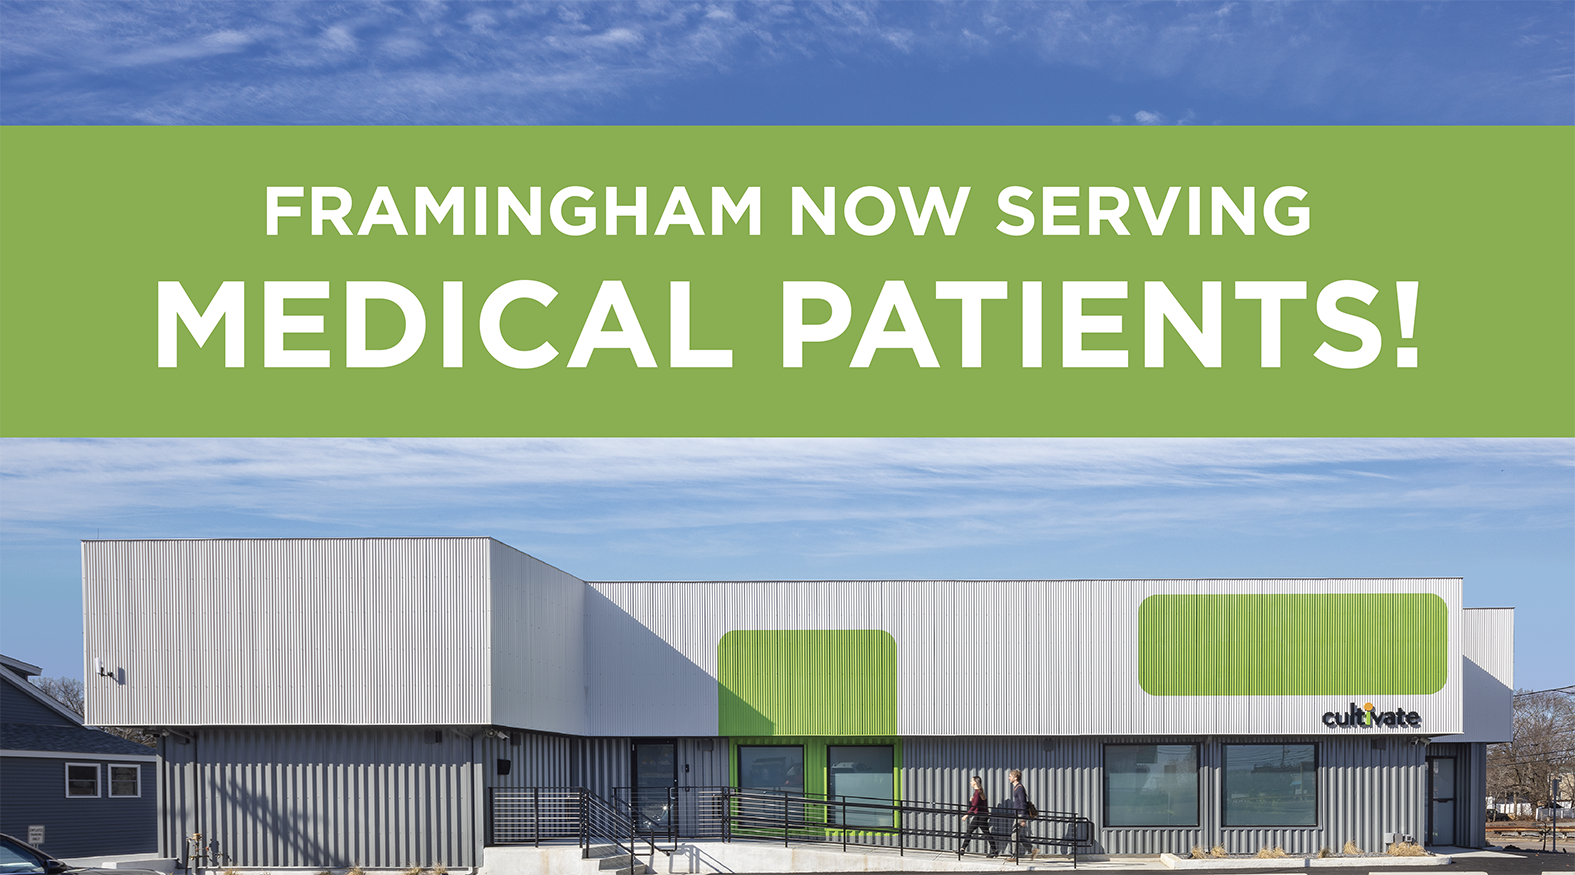 Framingham Now Serving Medical Patients!